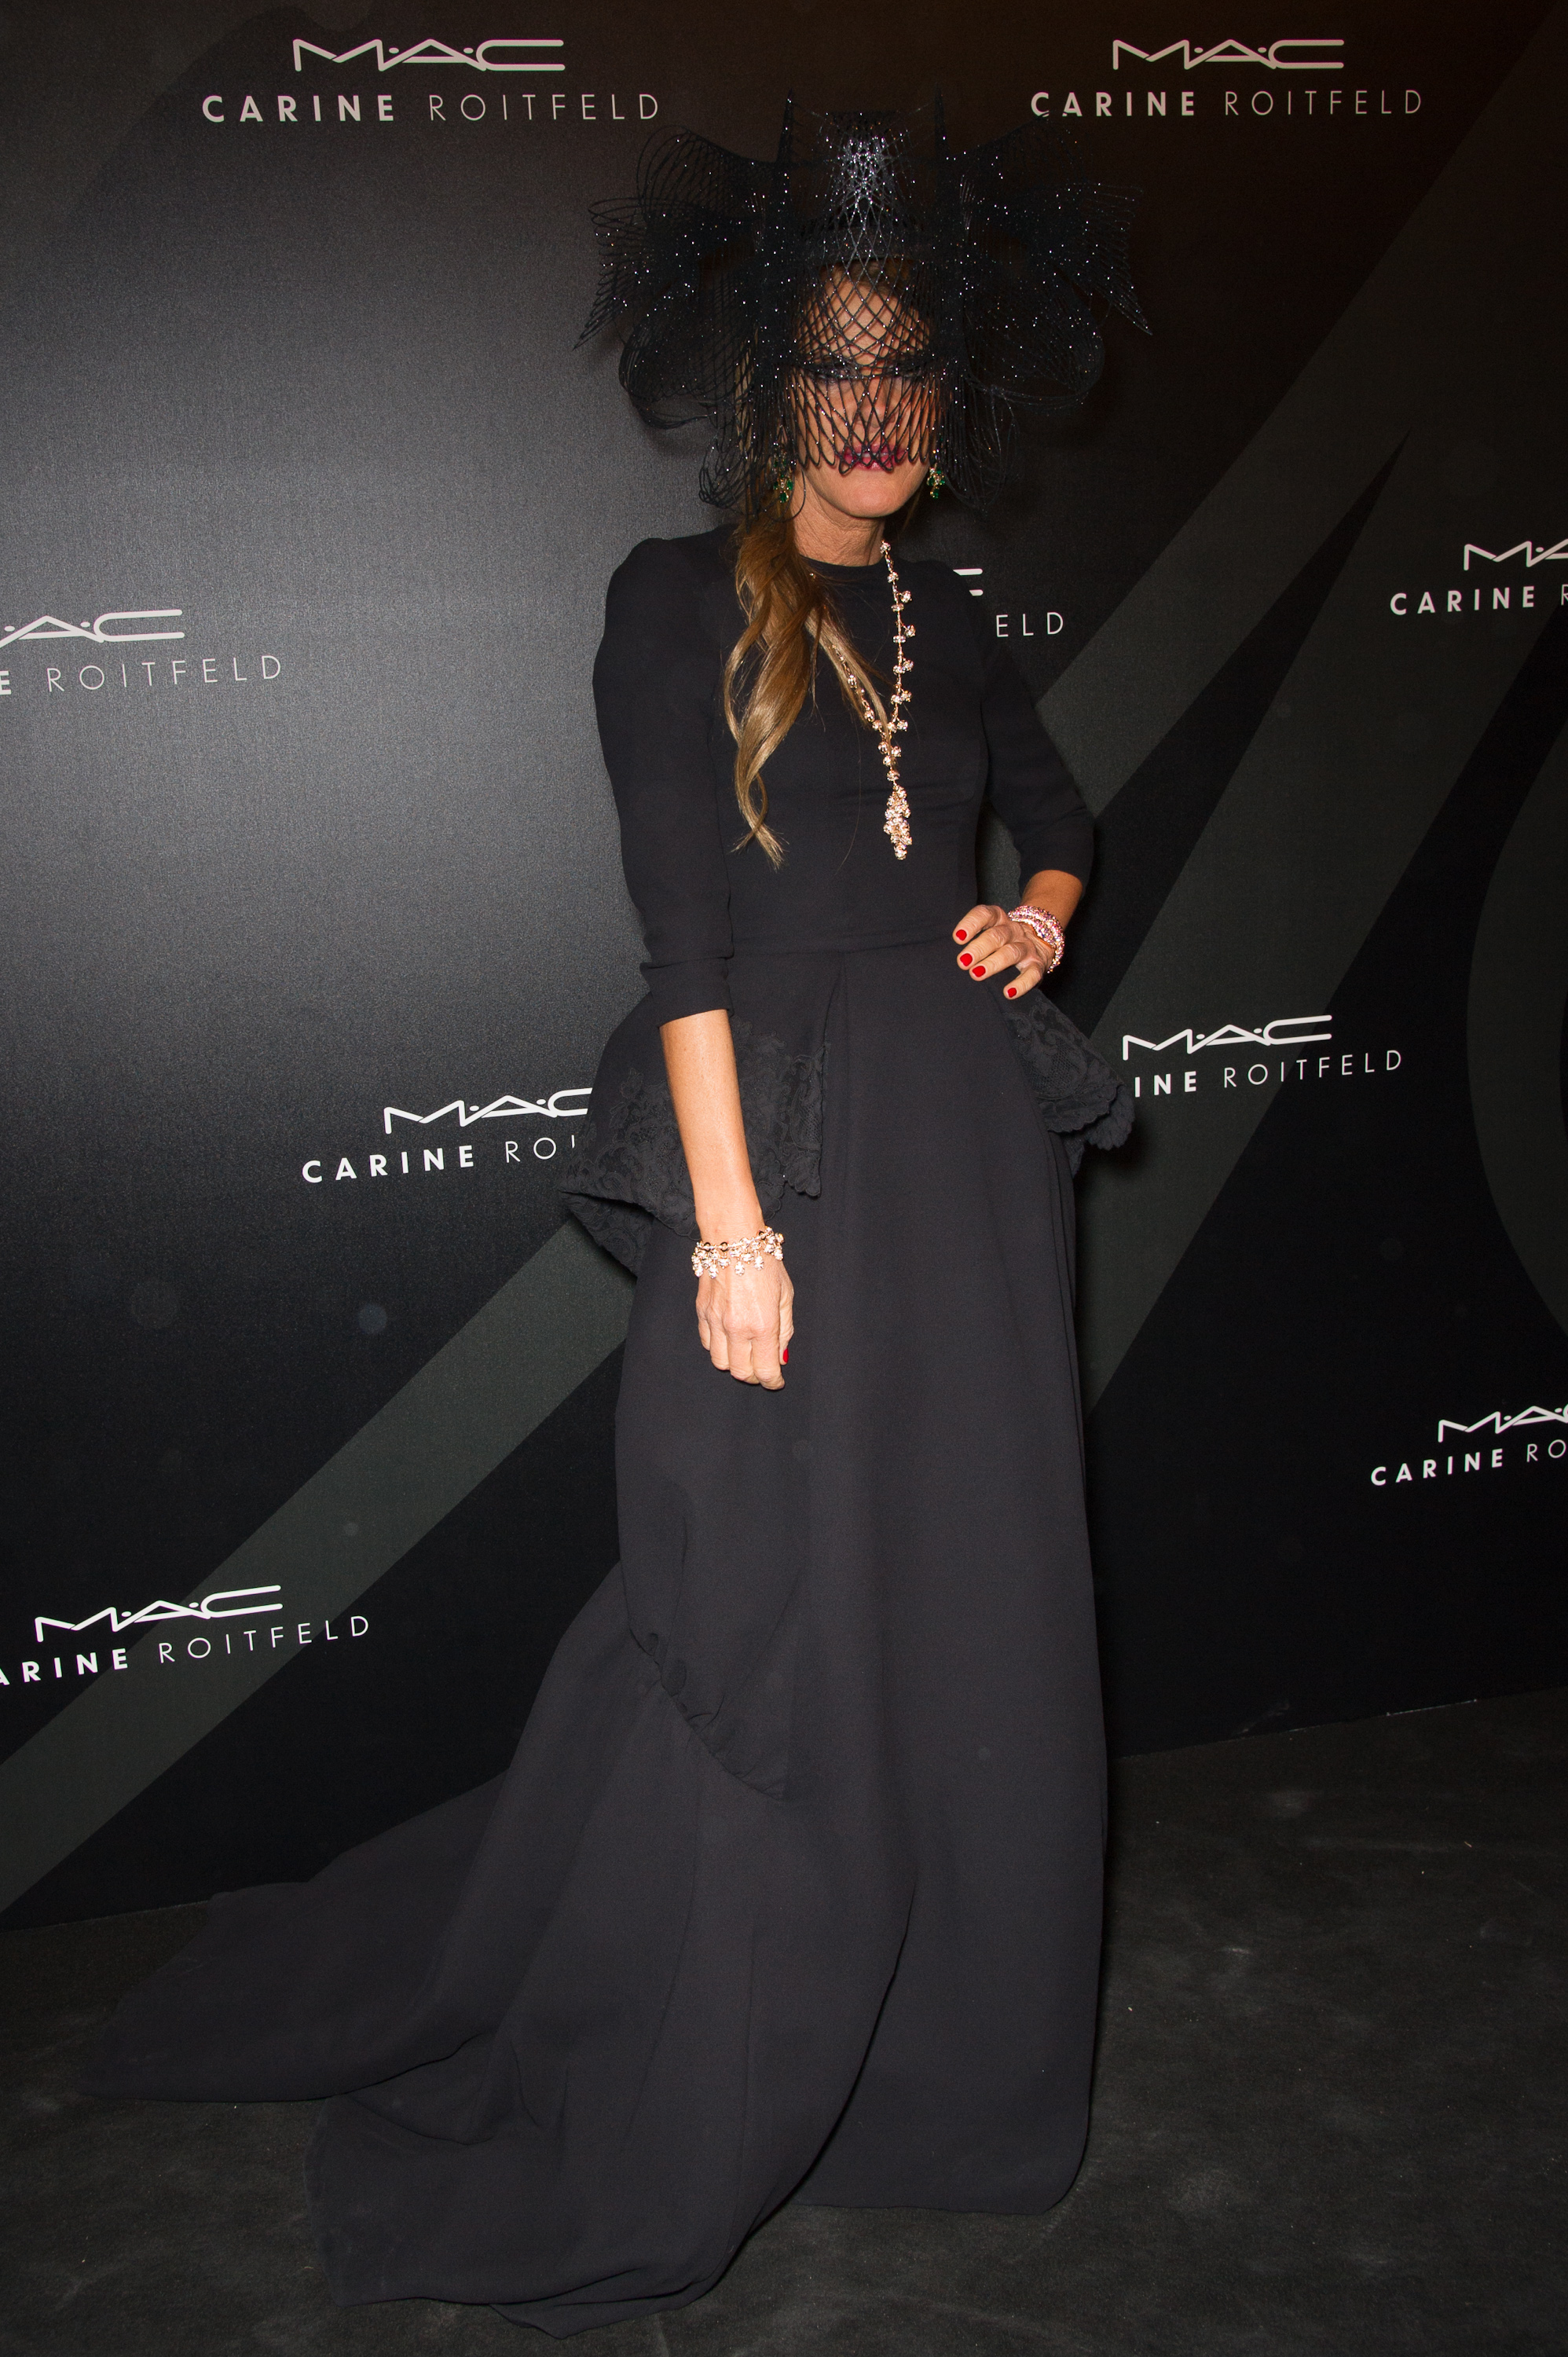 Anna Dello Russo opted for an ultradramatic vibe complete with a lace veil and statement jewelry at Carine's MAC party.